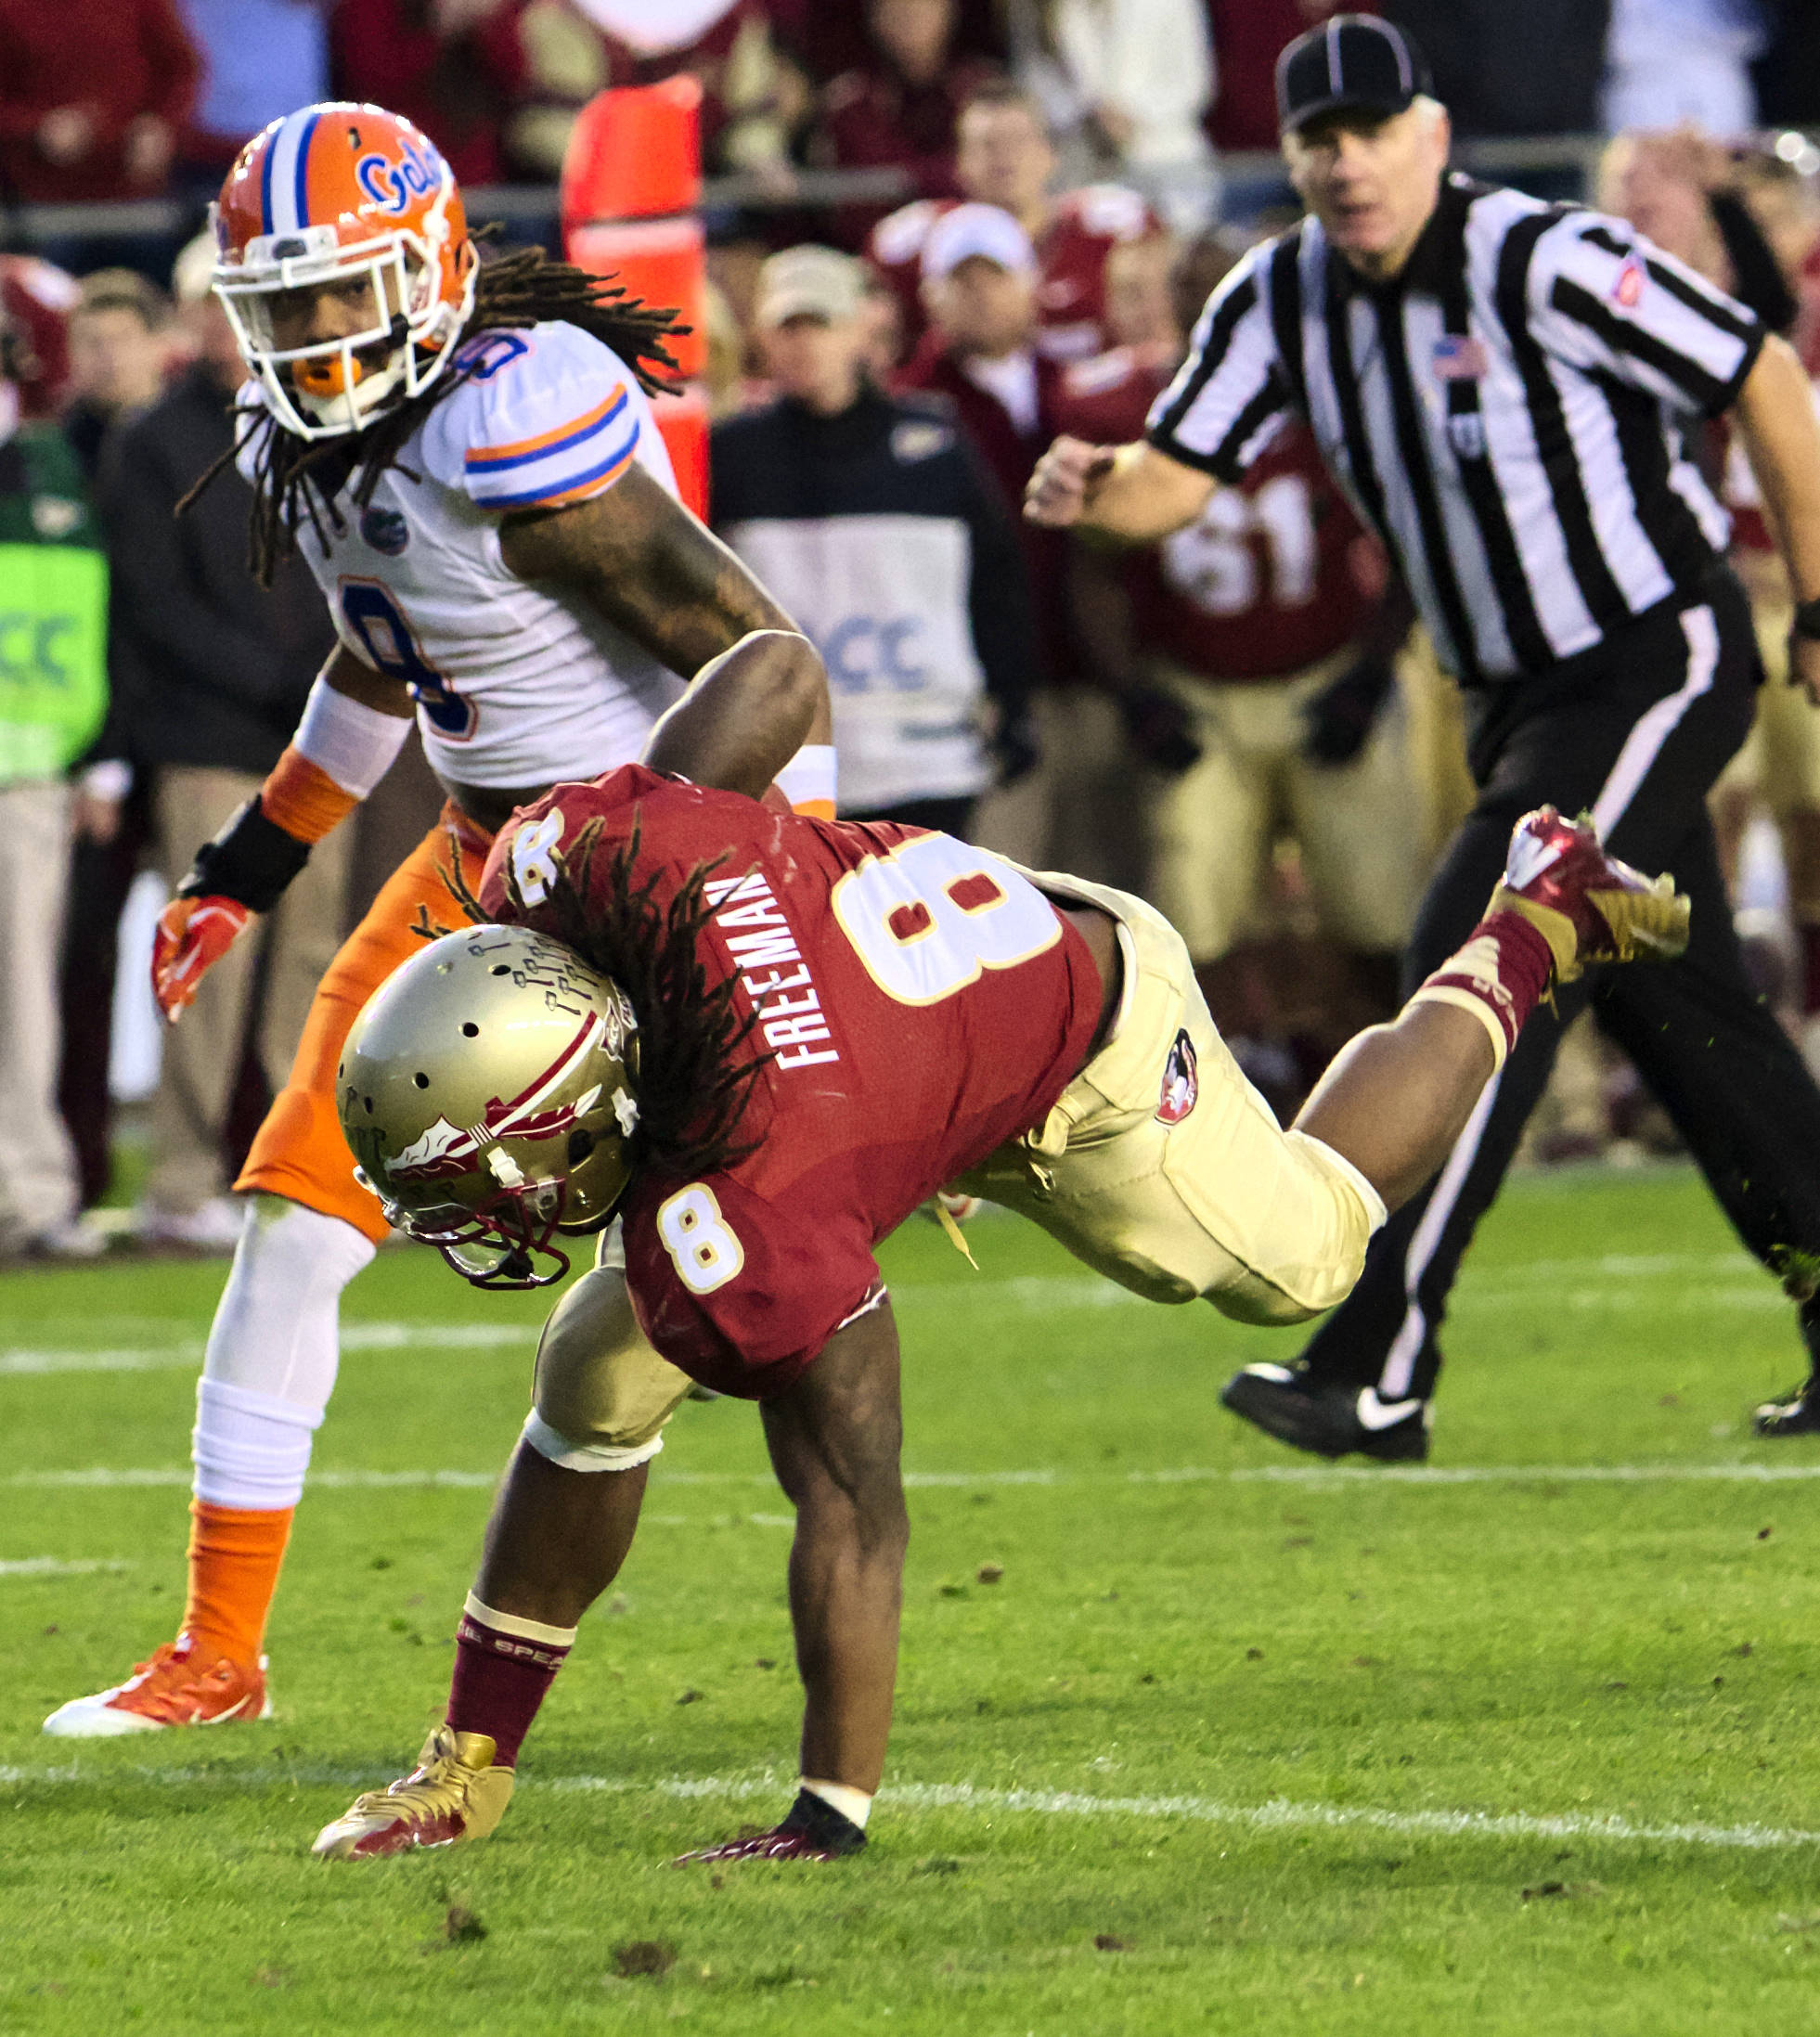 Devonta Freeman (8), FSU vs Florida, 11/24/12. (Photo by Steve Musco)